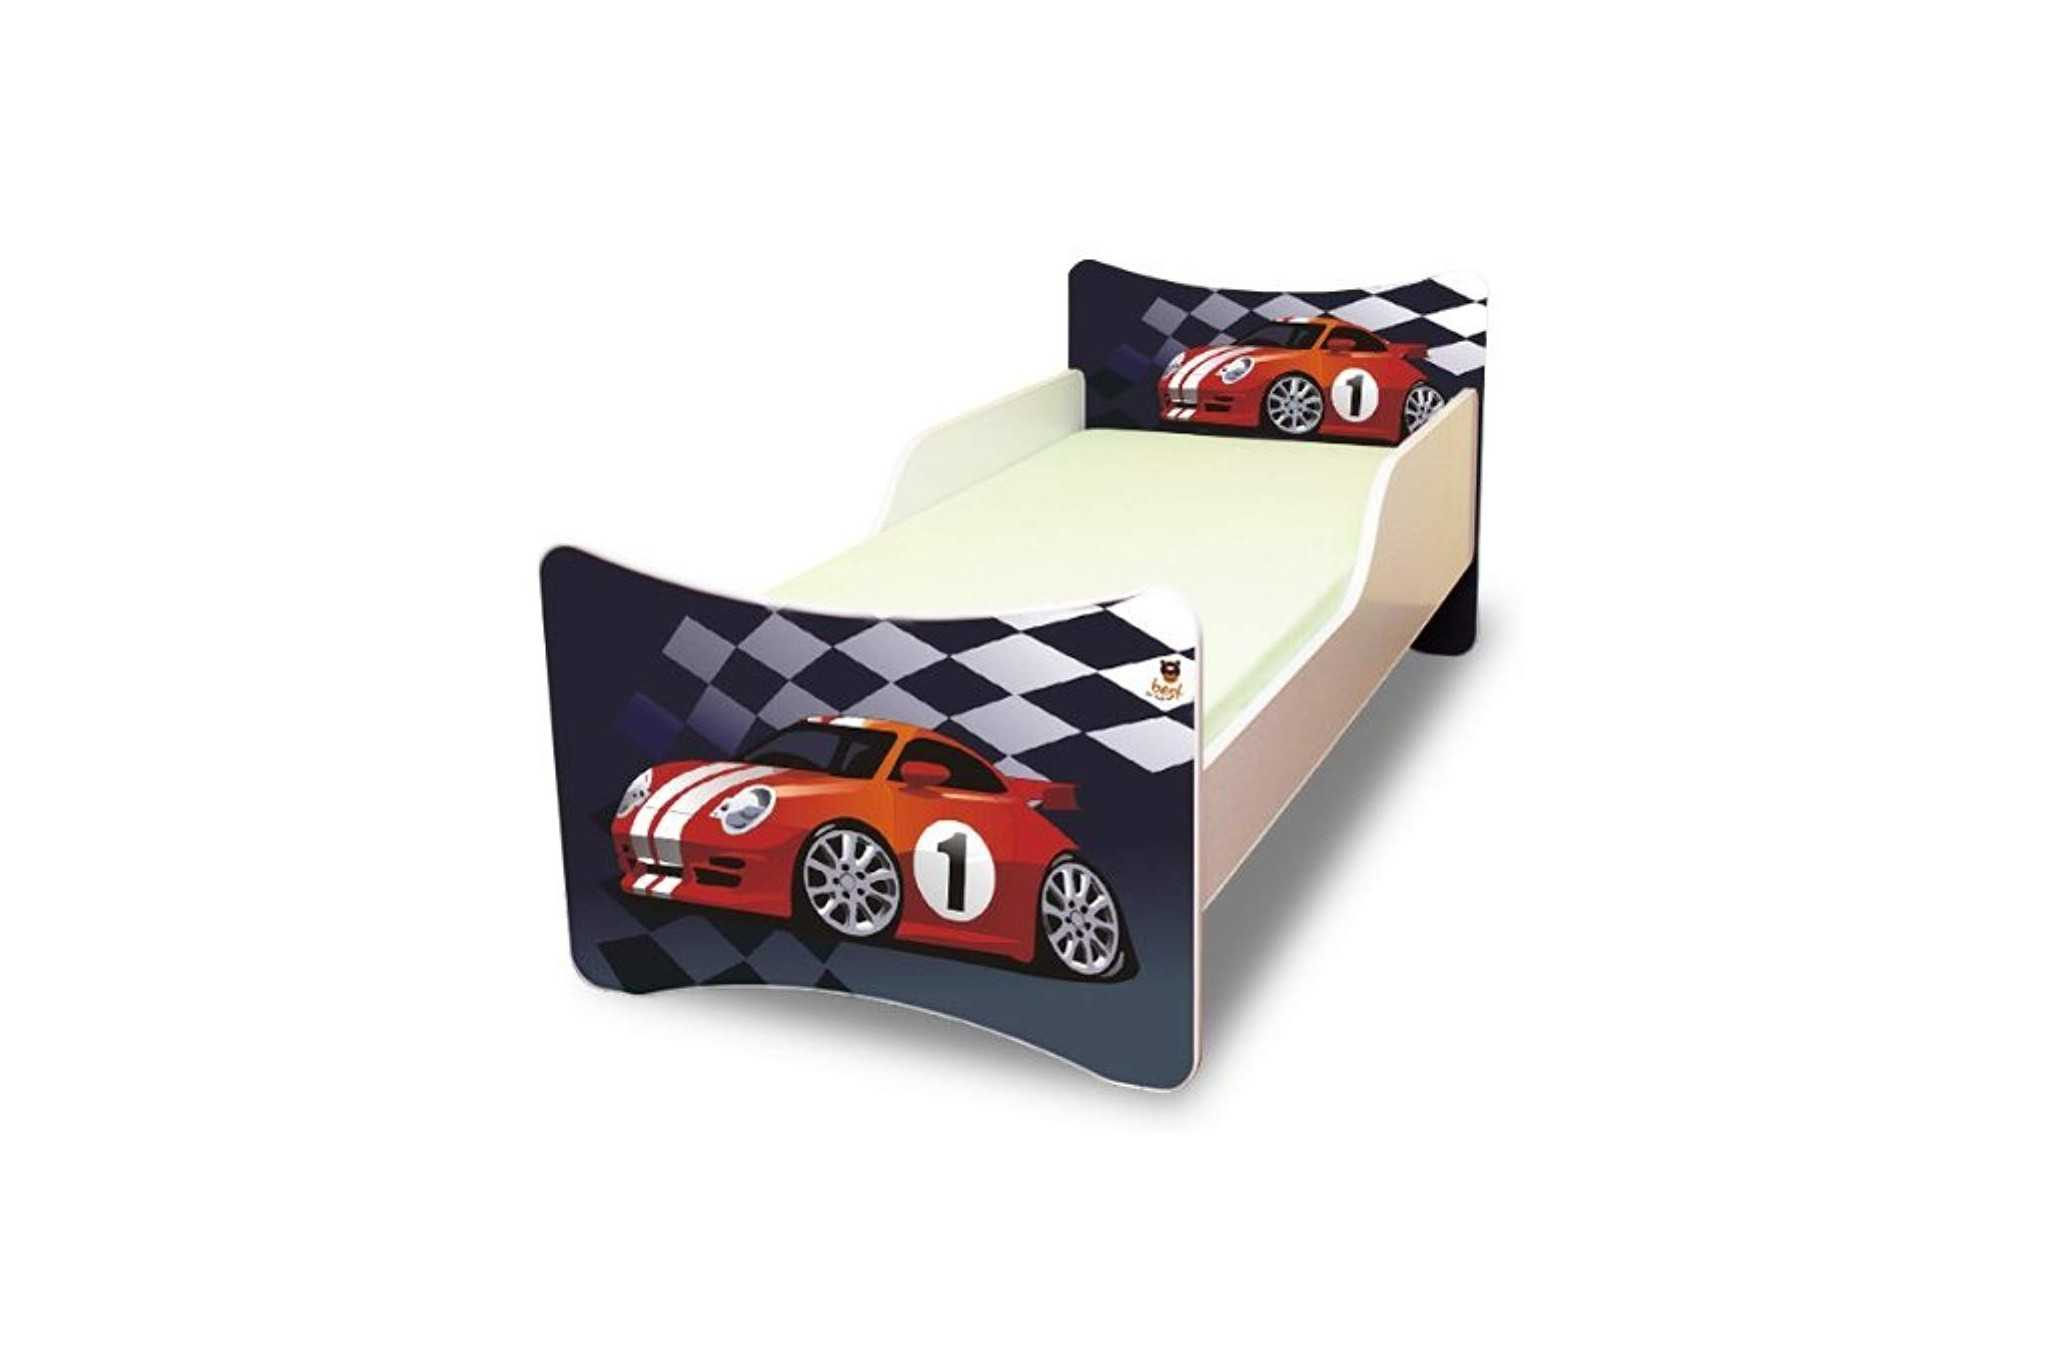 Best For Kids Kinderbett 90x200 ohne Matratze - Cars